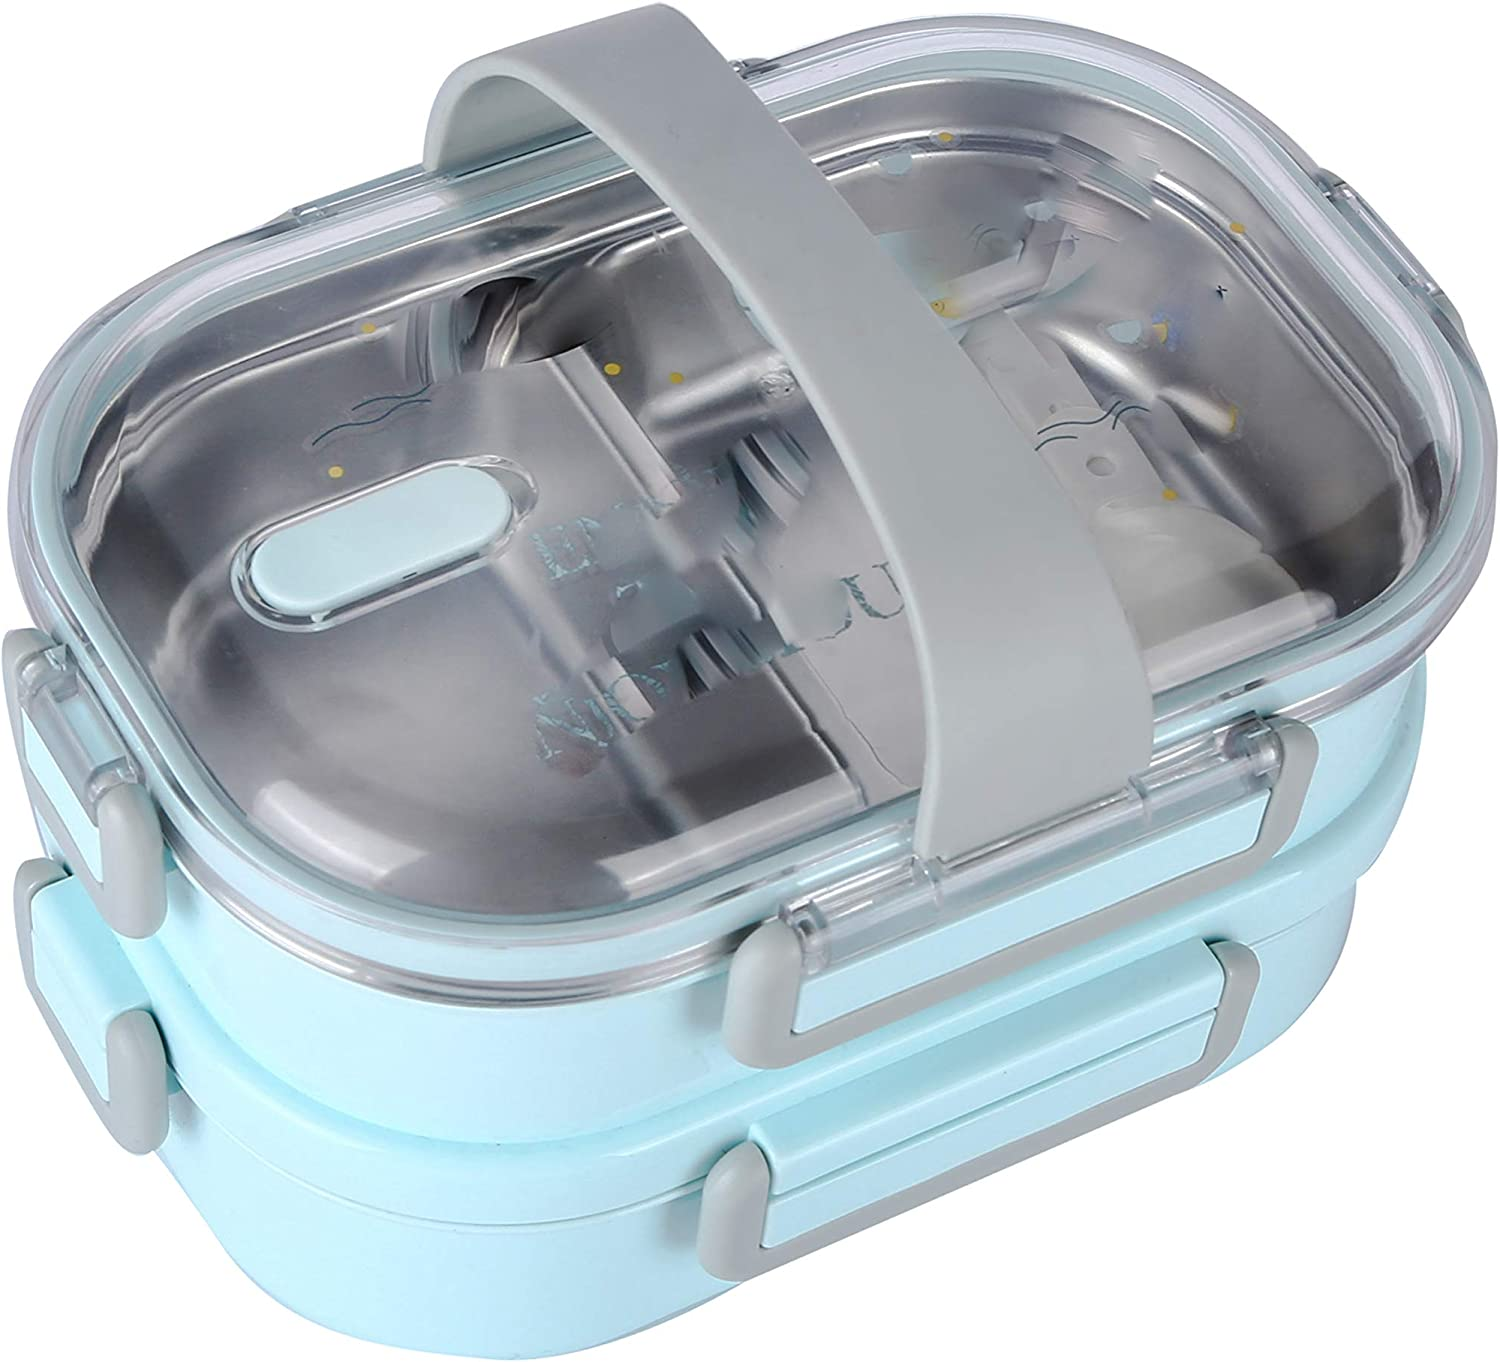 LunchBoss STEEBO | Stainless Steel ORIGINAL BENTO BOX with Plastic Cover For Kids & Adults 2 Tier - 44oz (Blue) | ORIGINAL JAPANESE DESIGN | LEAK-PROOF | DURABLE | STACKABLE | EASY OPEN & CLOSE Design